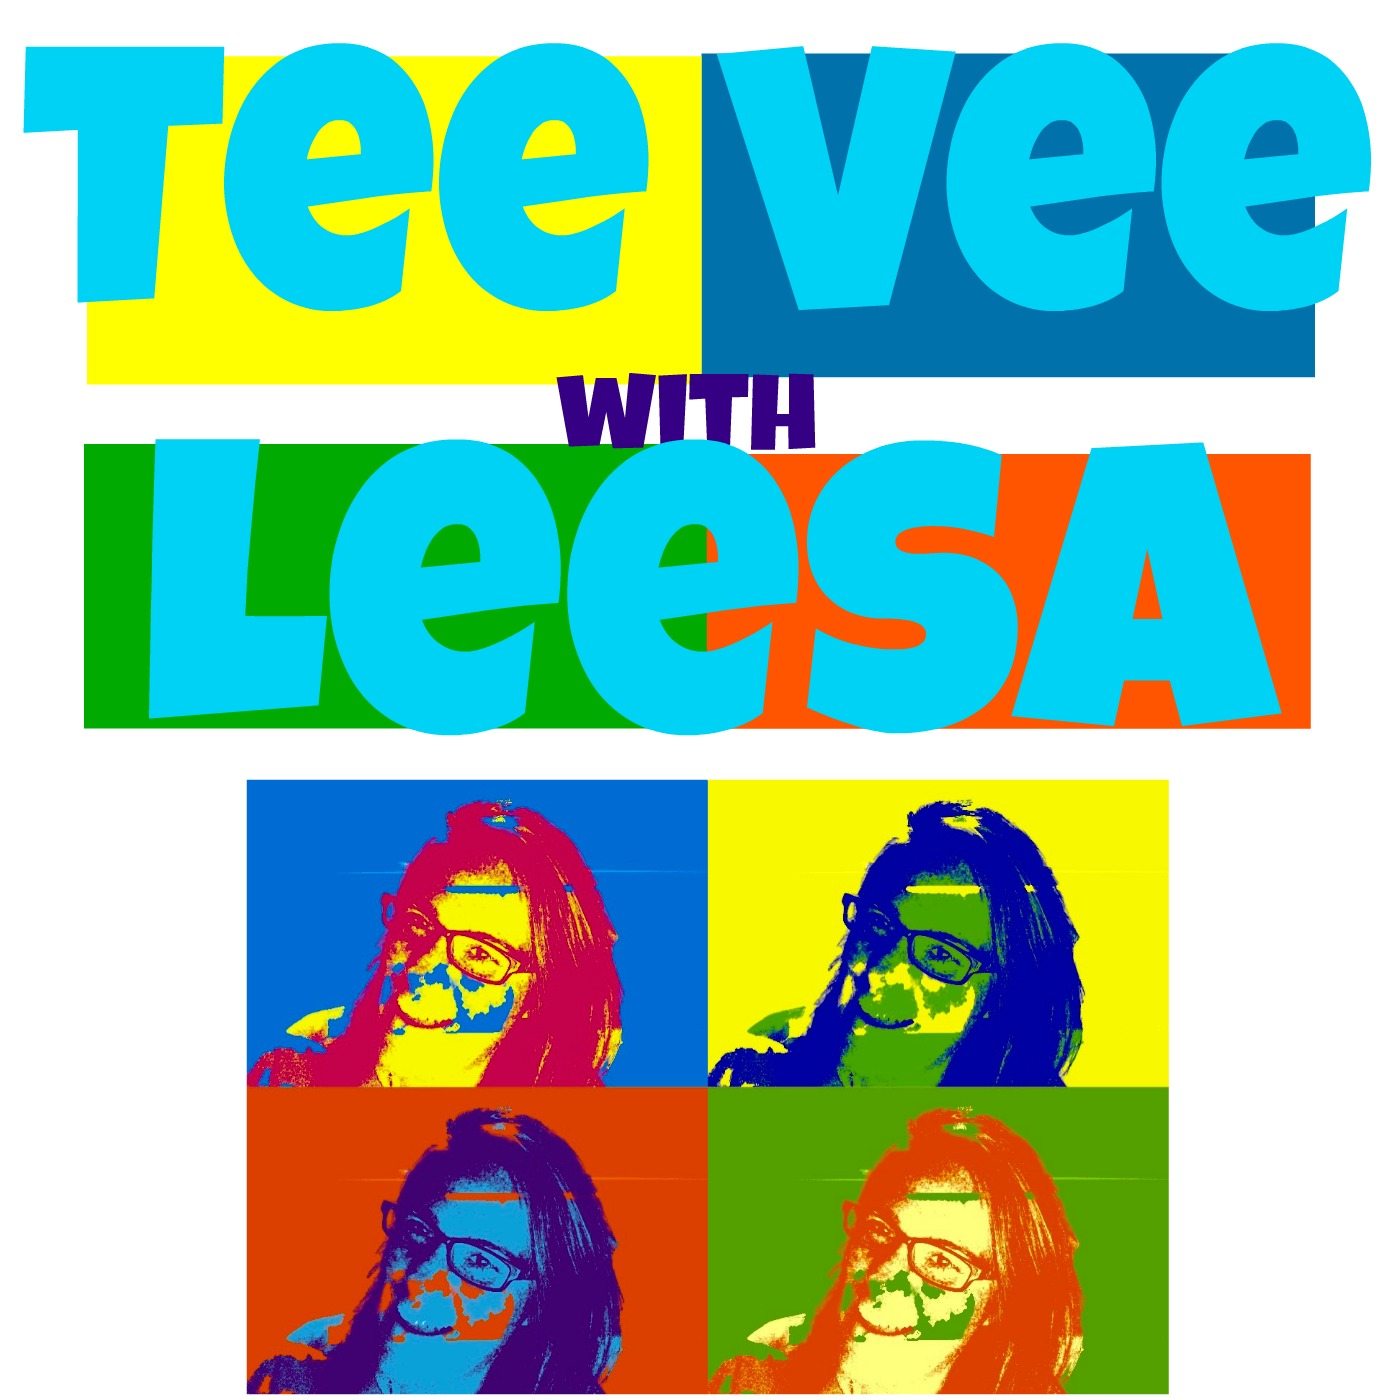 TeeVee with Leesa